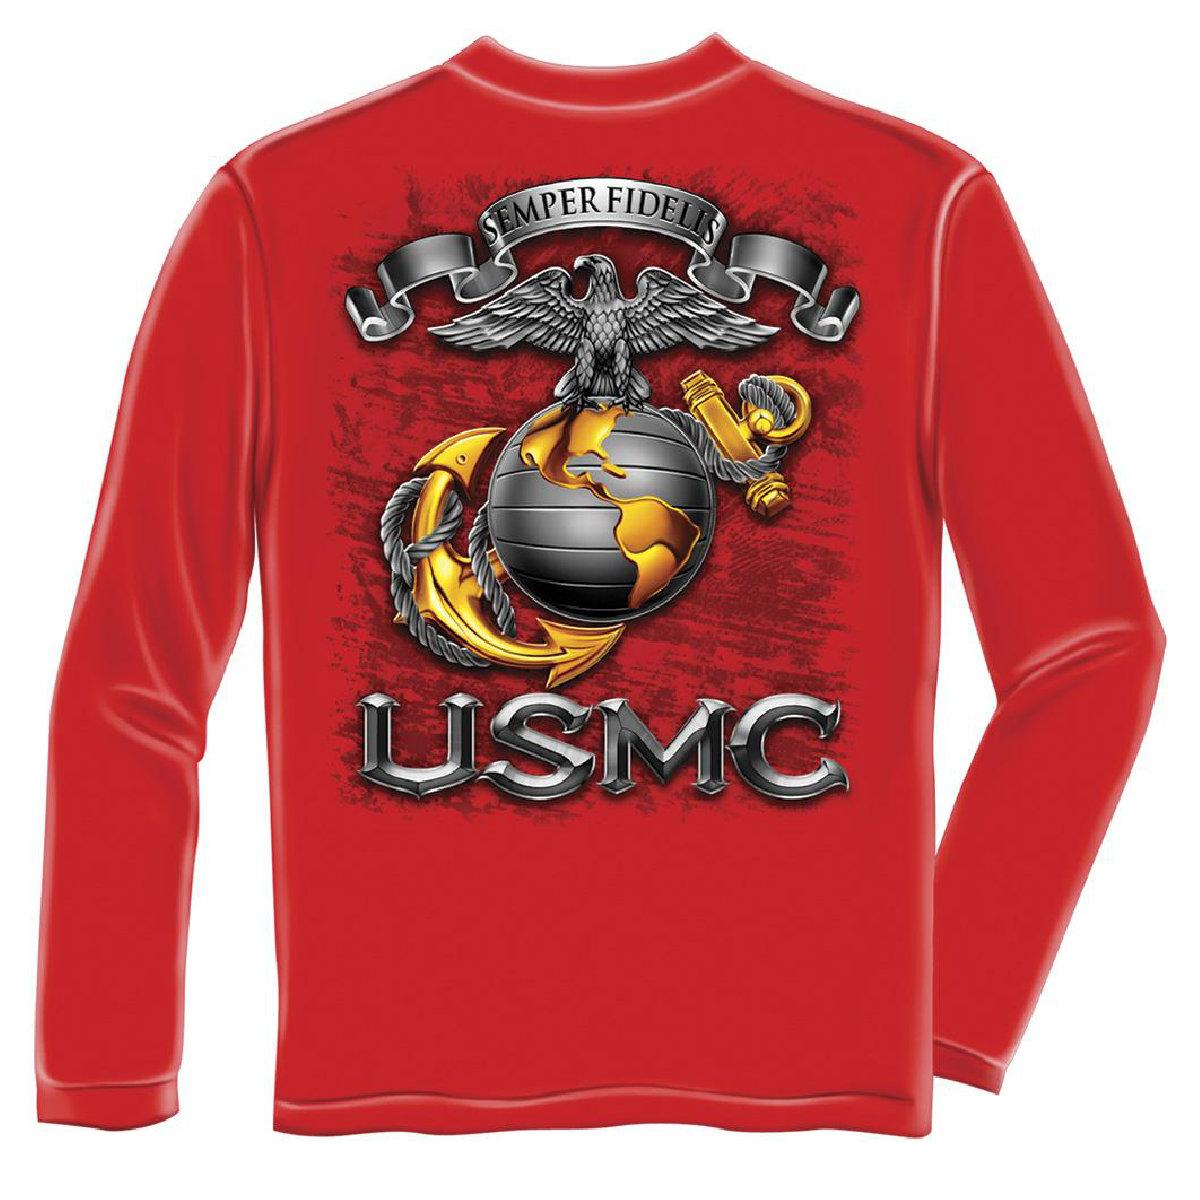 USMC Marine Corps Semper Fidelis Long Sleeve T-Shirt by , Red